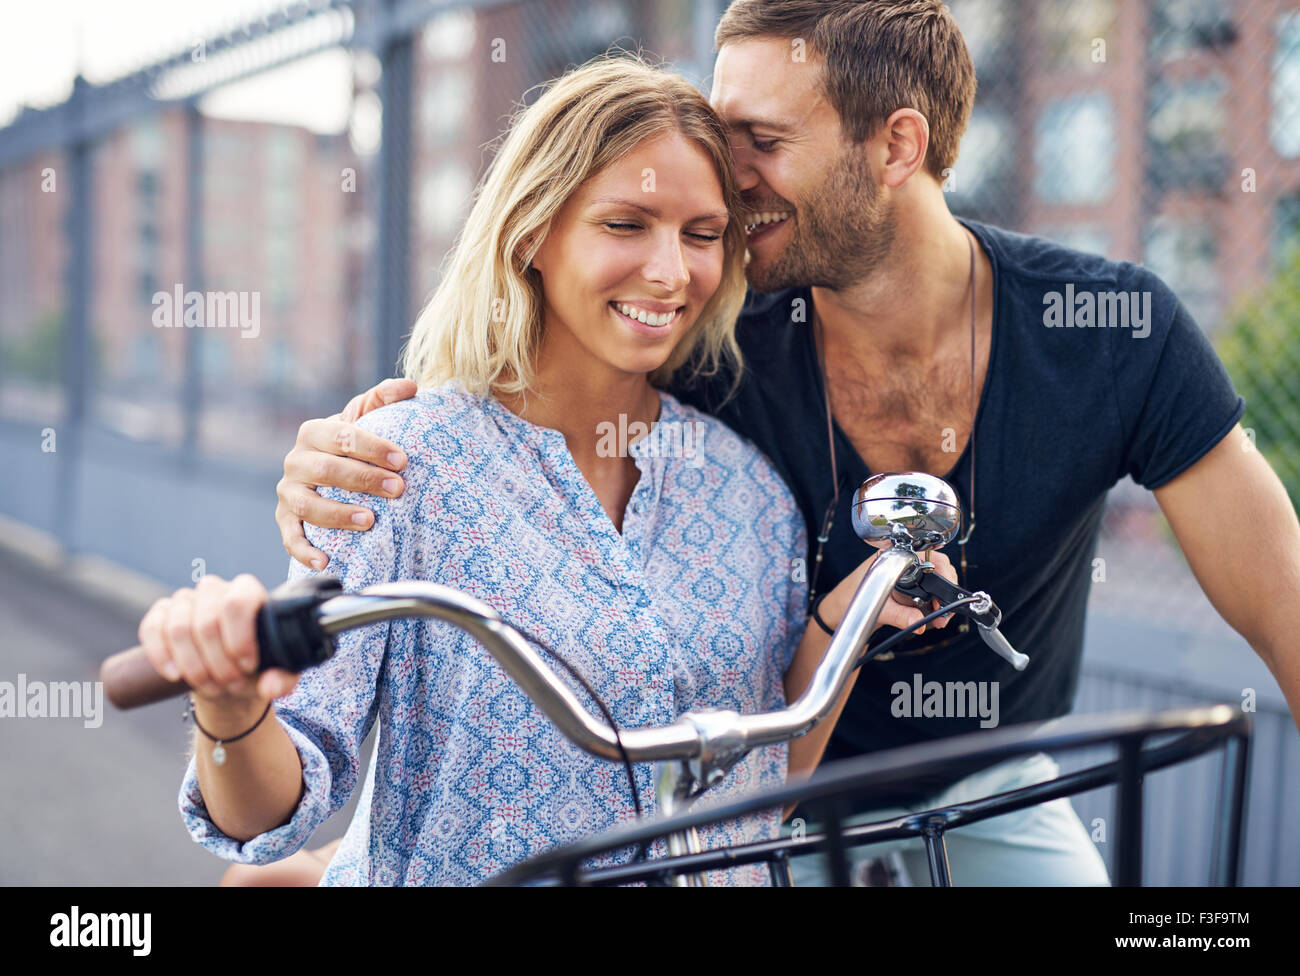 City couple loving each other while out riding bikes - Stock Image